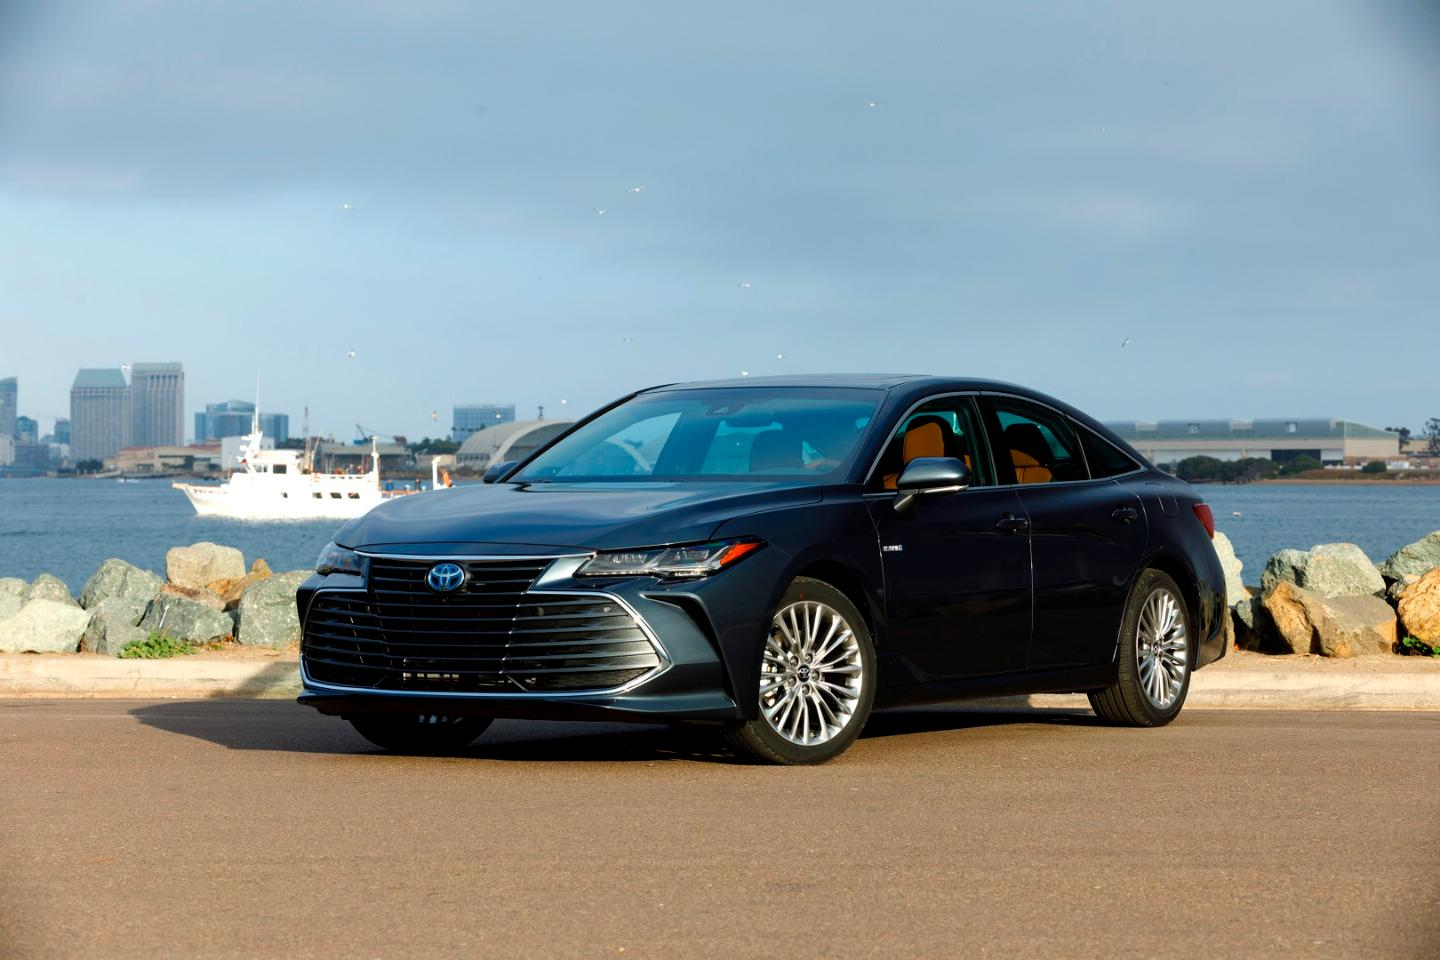 The Toyota nameplate is synonymous with reliability to many ofthe buying public and the Avalon is one of the most recognizable Toyotas thanks to it being the flagship of the automaker'ssedan lineup